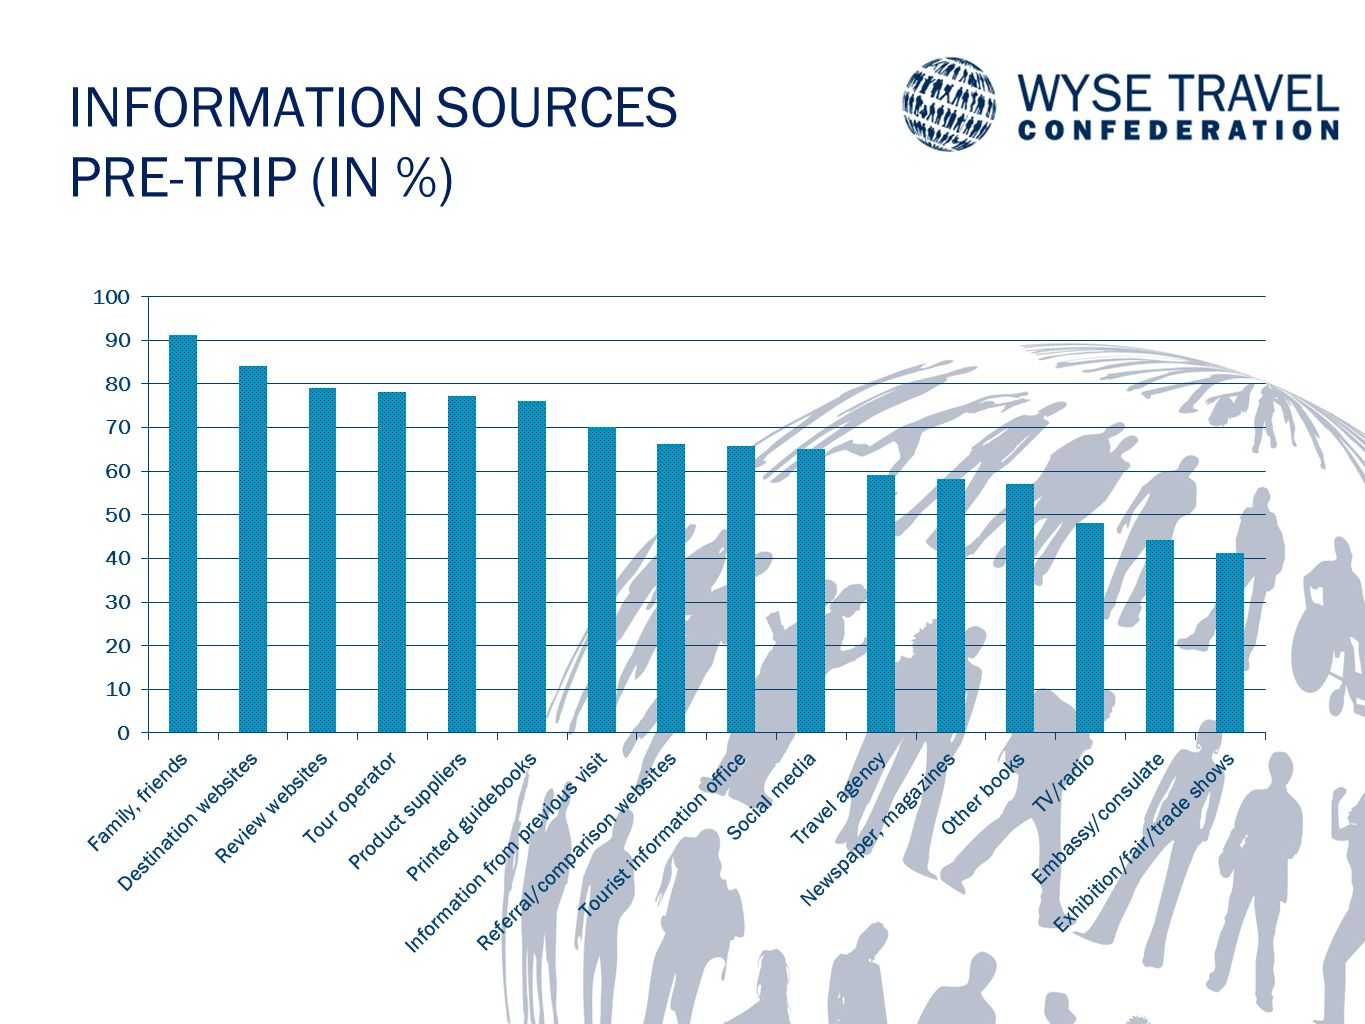 INFORMATION SOURCES PRE-TRIP (IN %)